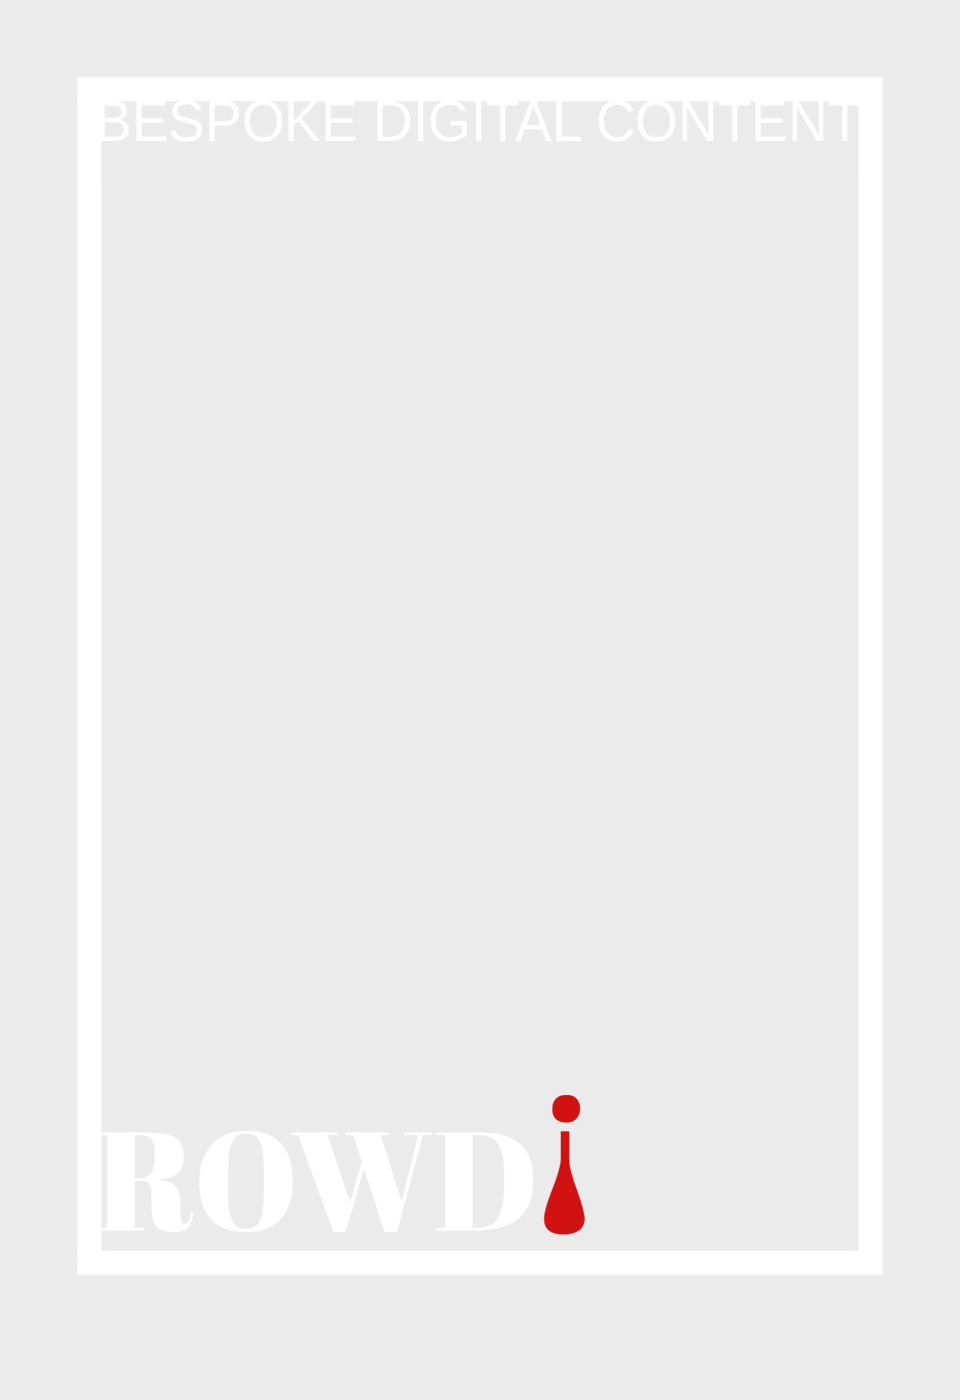 ROWDi for DDS pres web page lighter.png